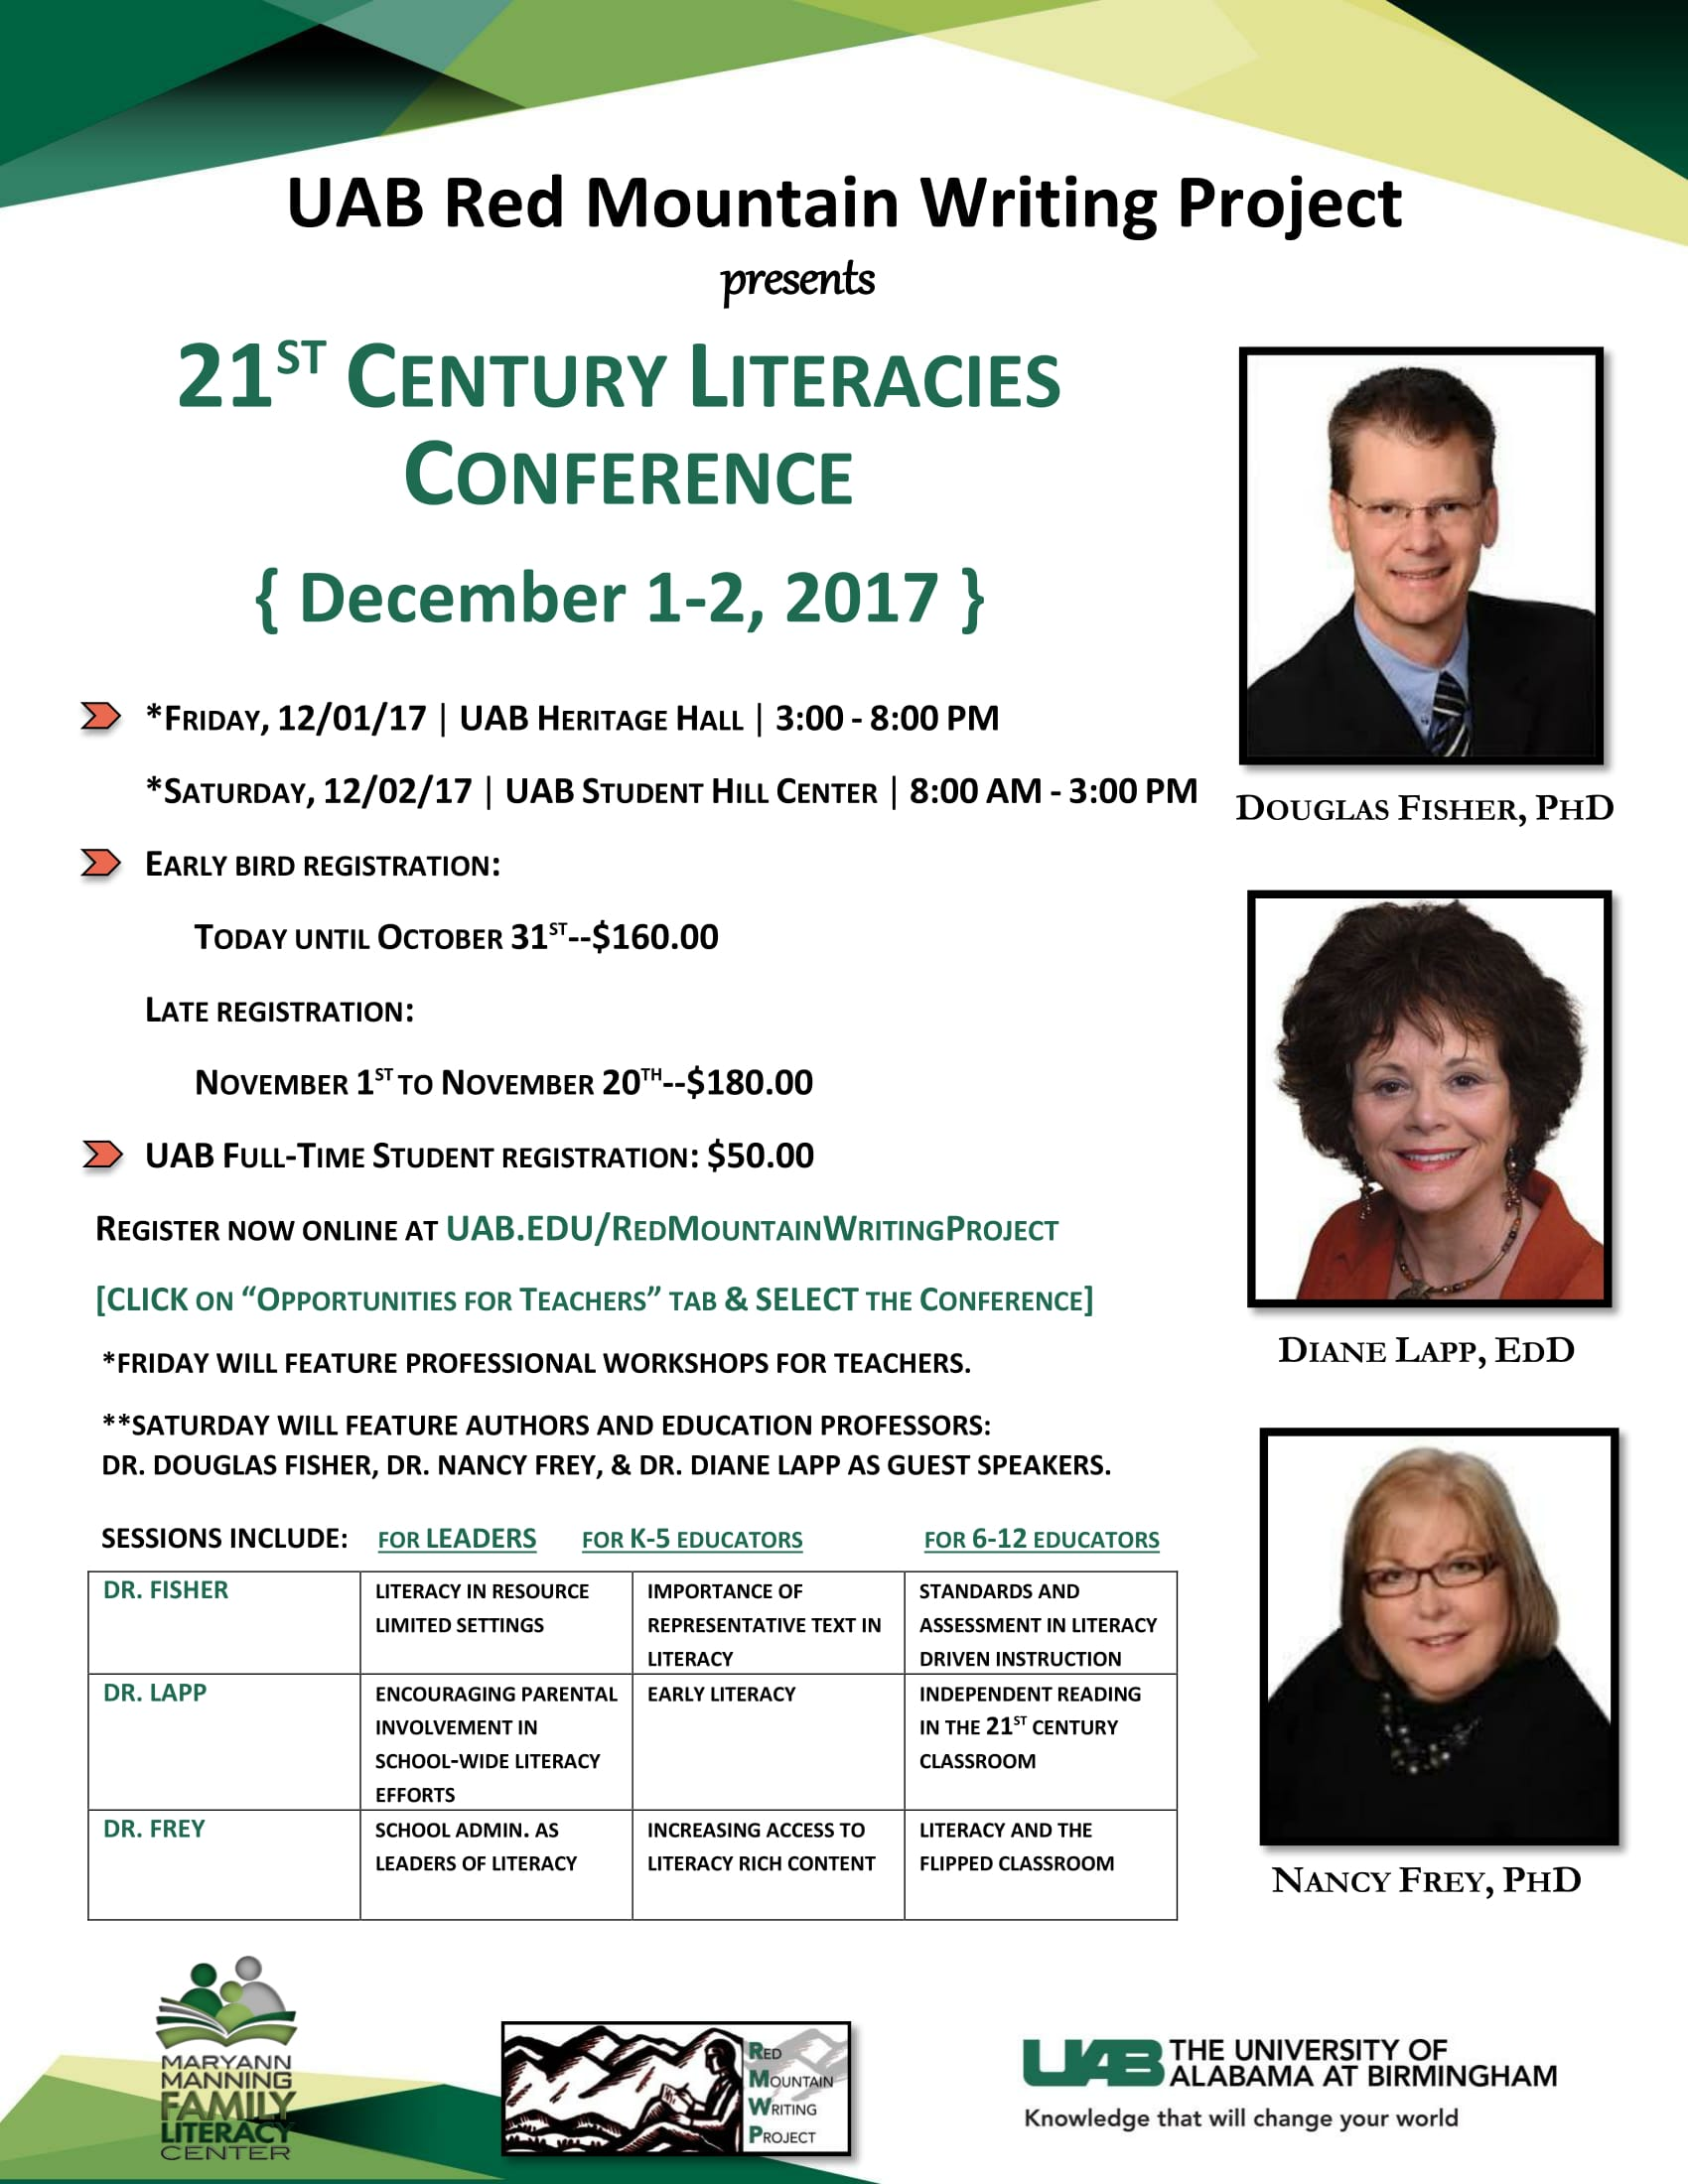 literacies conference flyer 9.28.17 1 1